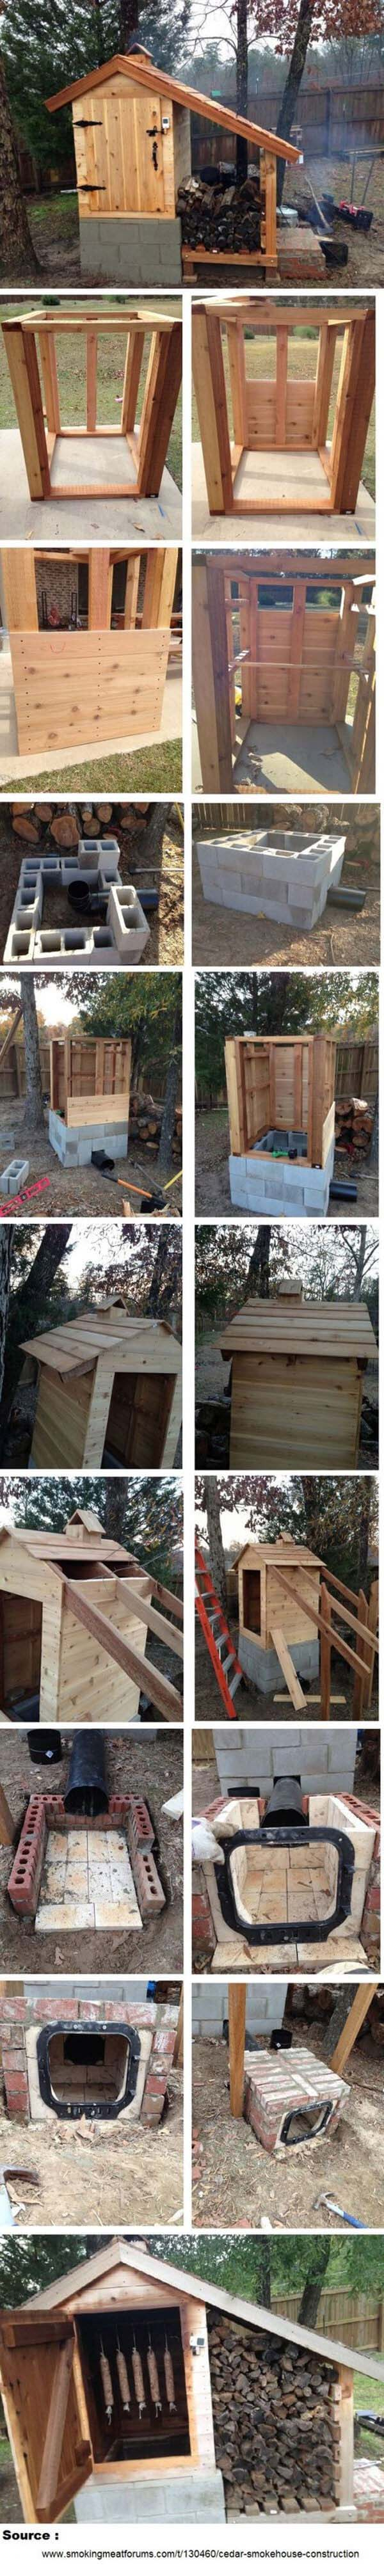 Unique Wood Storing Ideas for the Winter #shed #garden #decorhomeideas